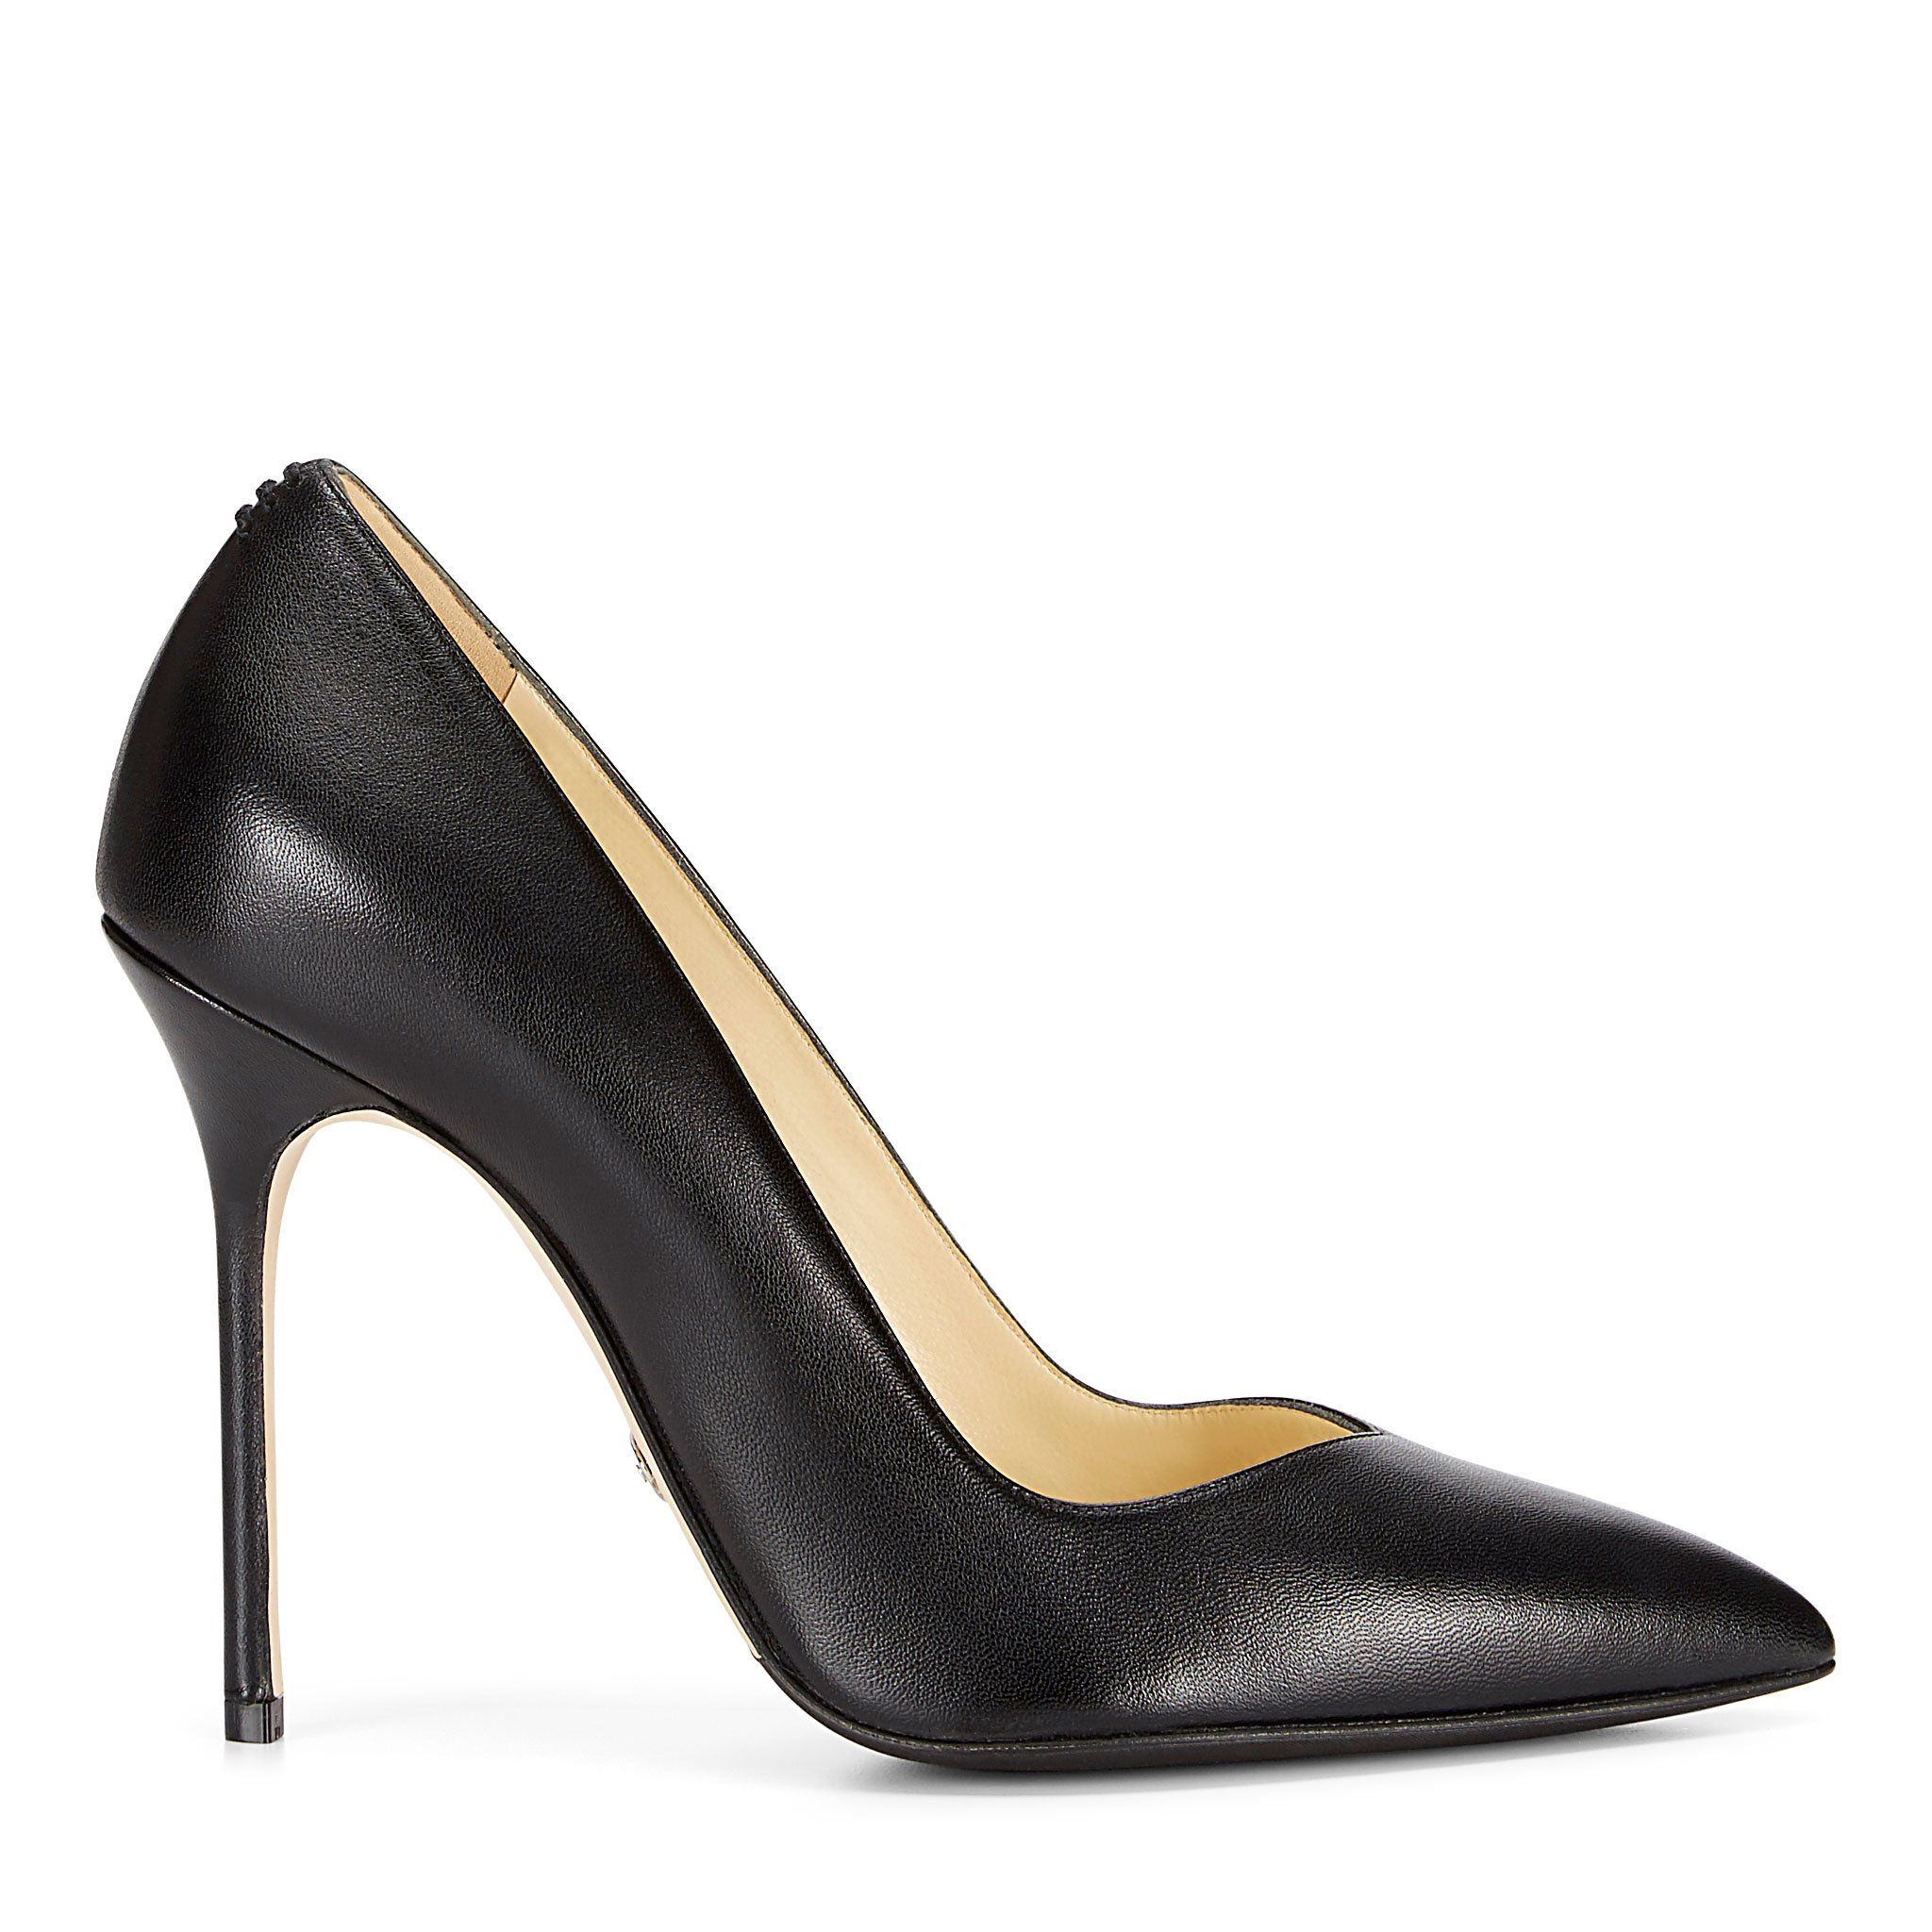 8fd54a65bd8 These are Meghan Markle s Favorite Shoes – Meghan Markle Loves ...